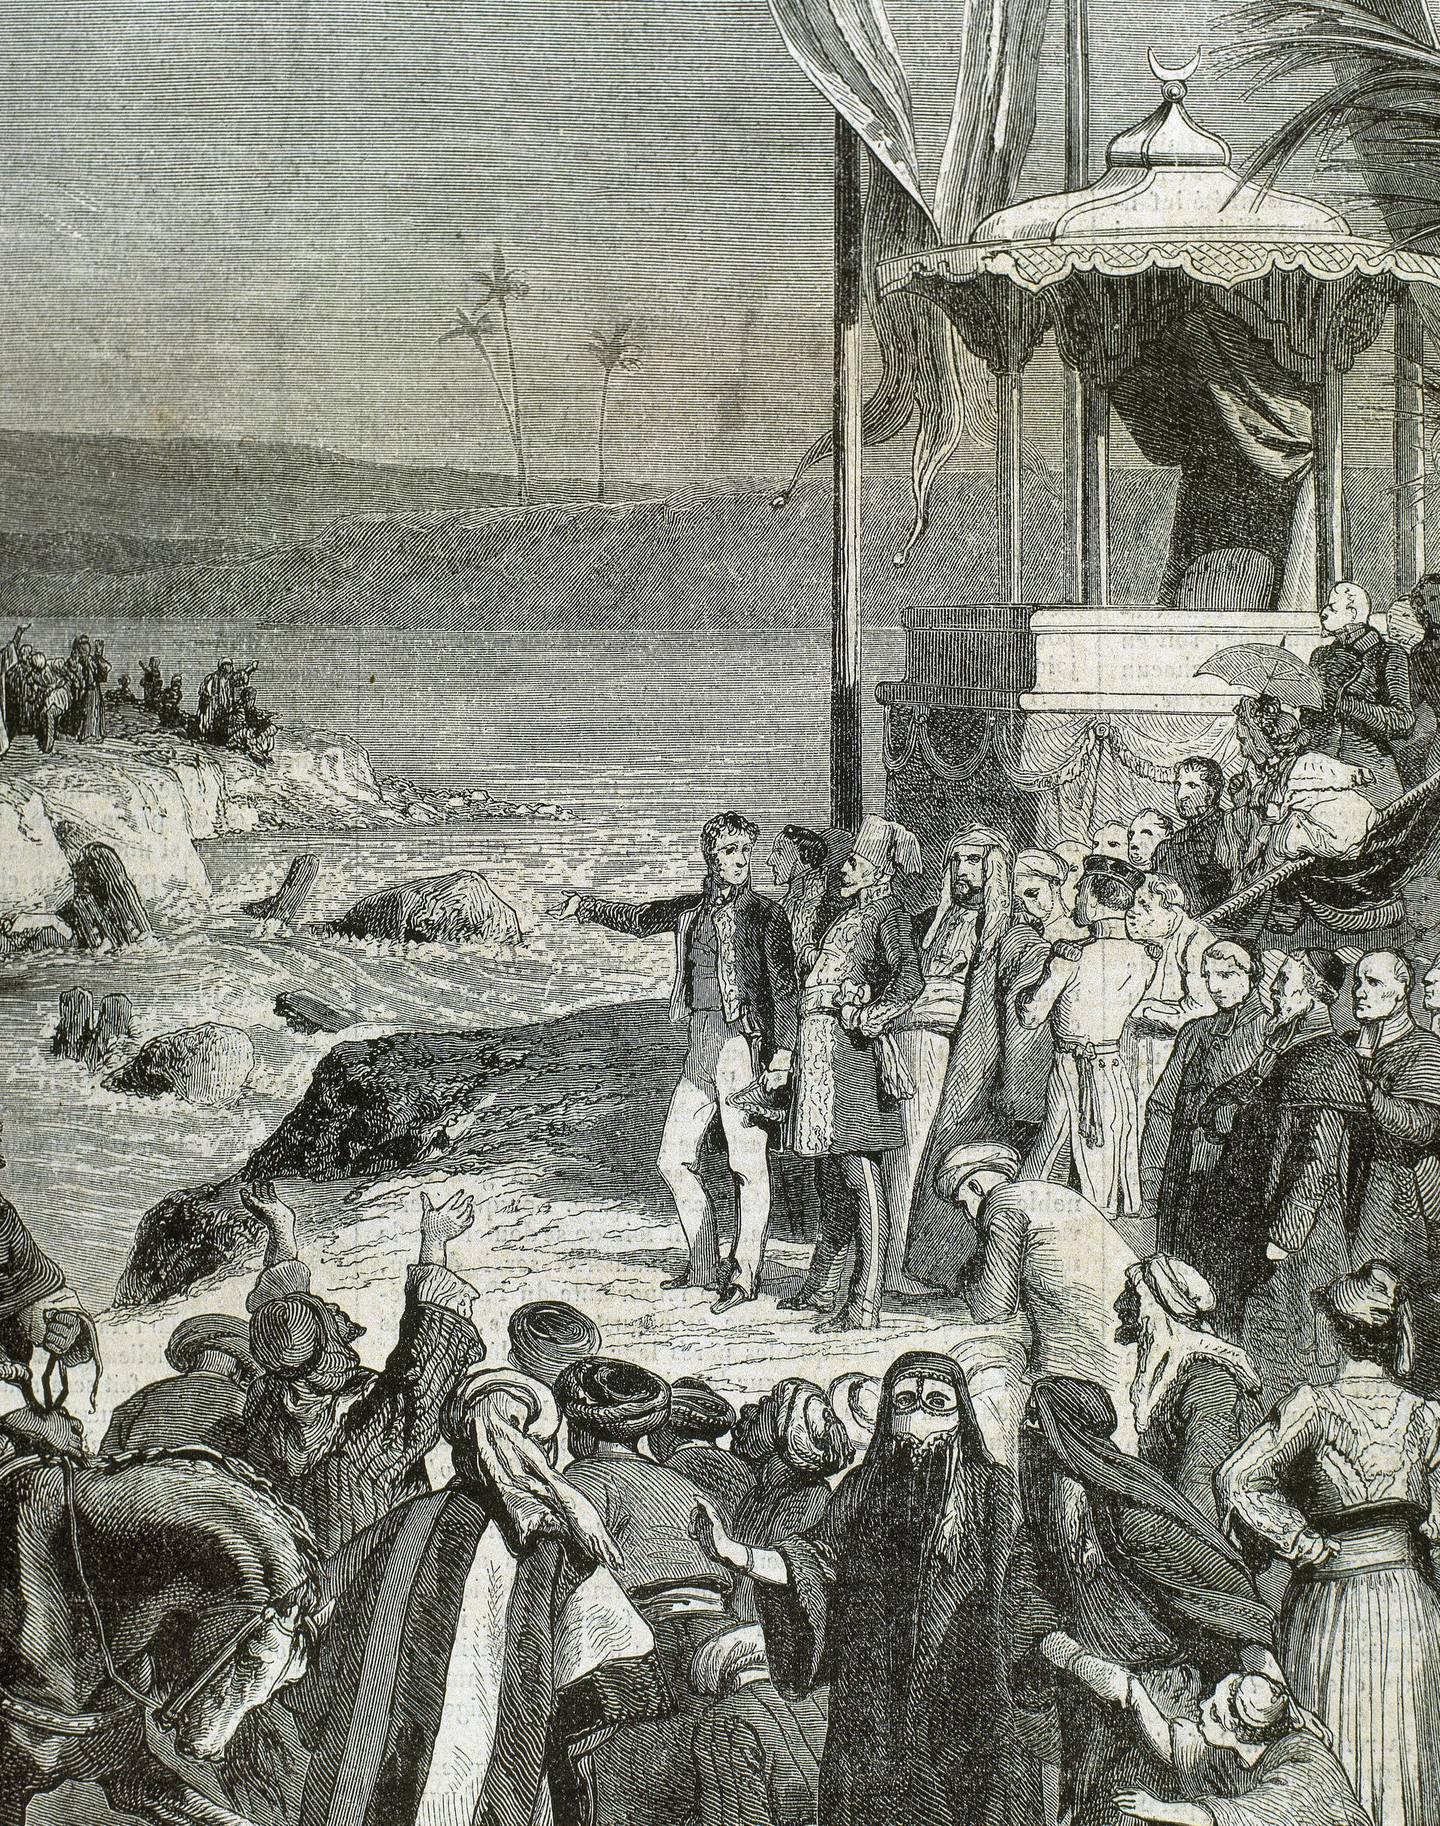 Egypt. The Suez Canal. It connects the Mediterranean Sea to the Red Sea through the Isthmus of Suez. Inauguration ceremony of the Suez Canal at Port-Said on November 17, 1869 under Isma'il Pasha (1830-1895). Engraving by Desandre. (Photo by: PHAS/Universal Images Group via Getty Images)